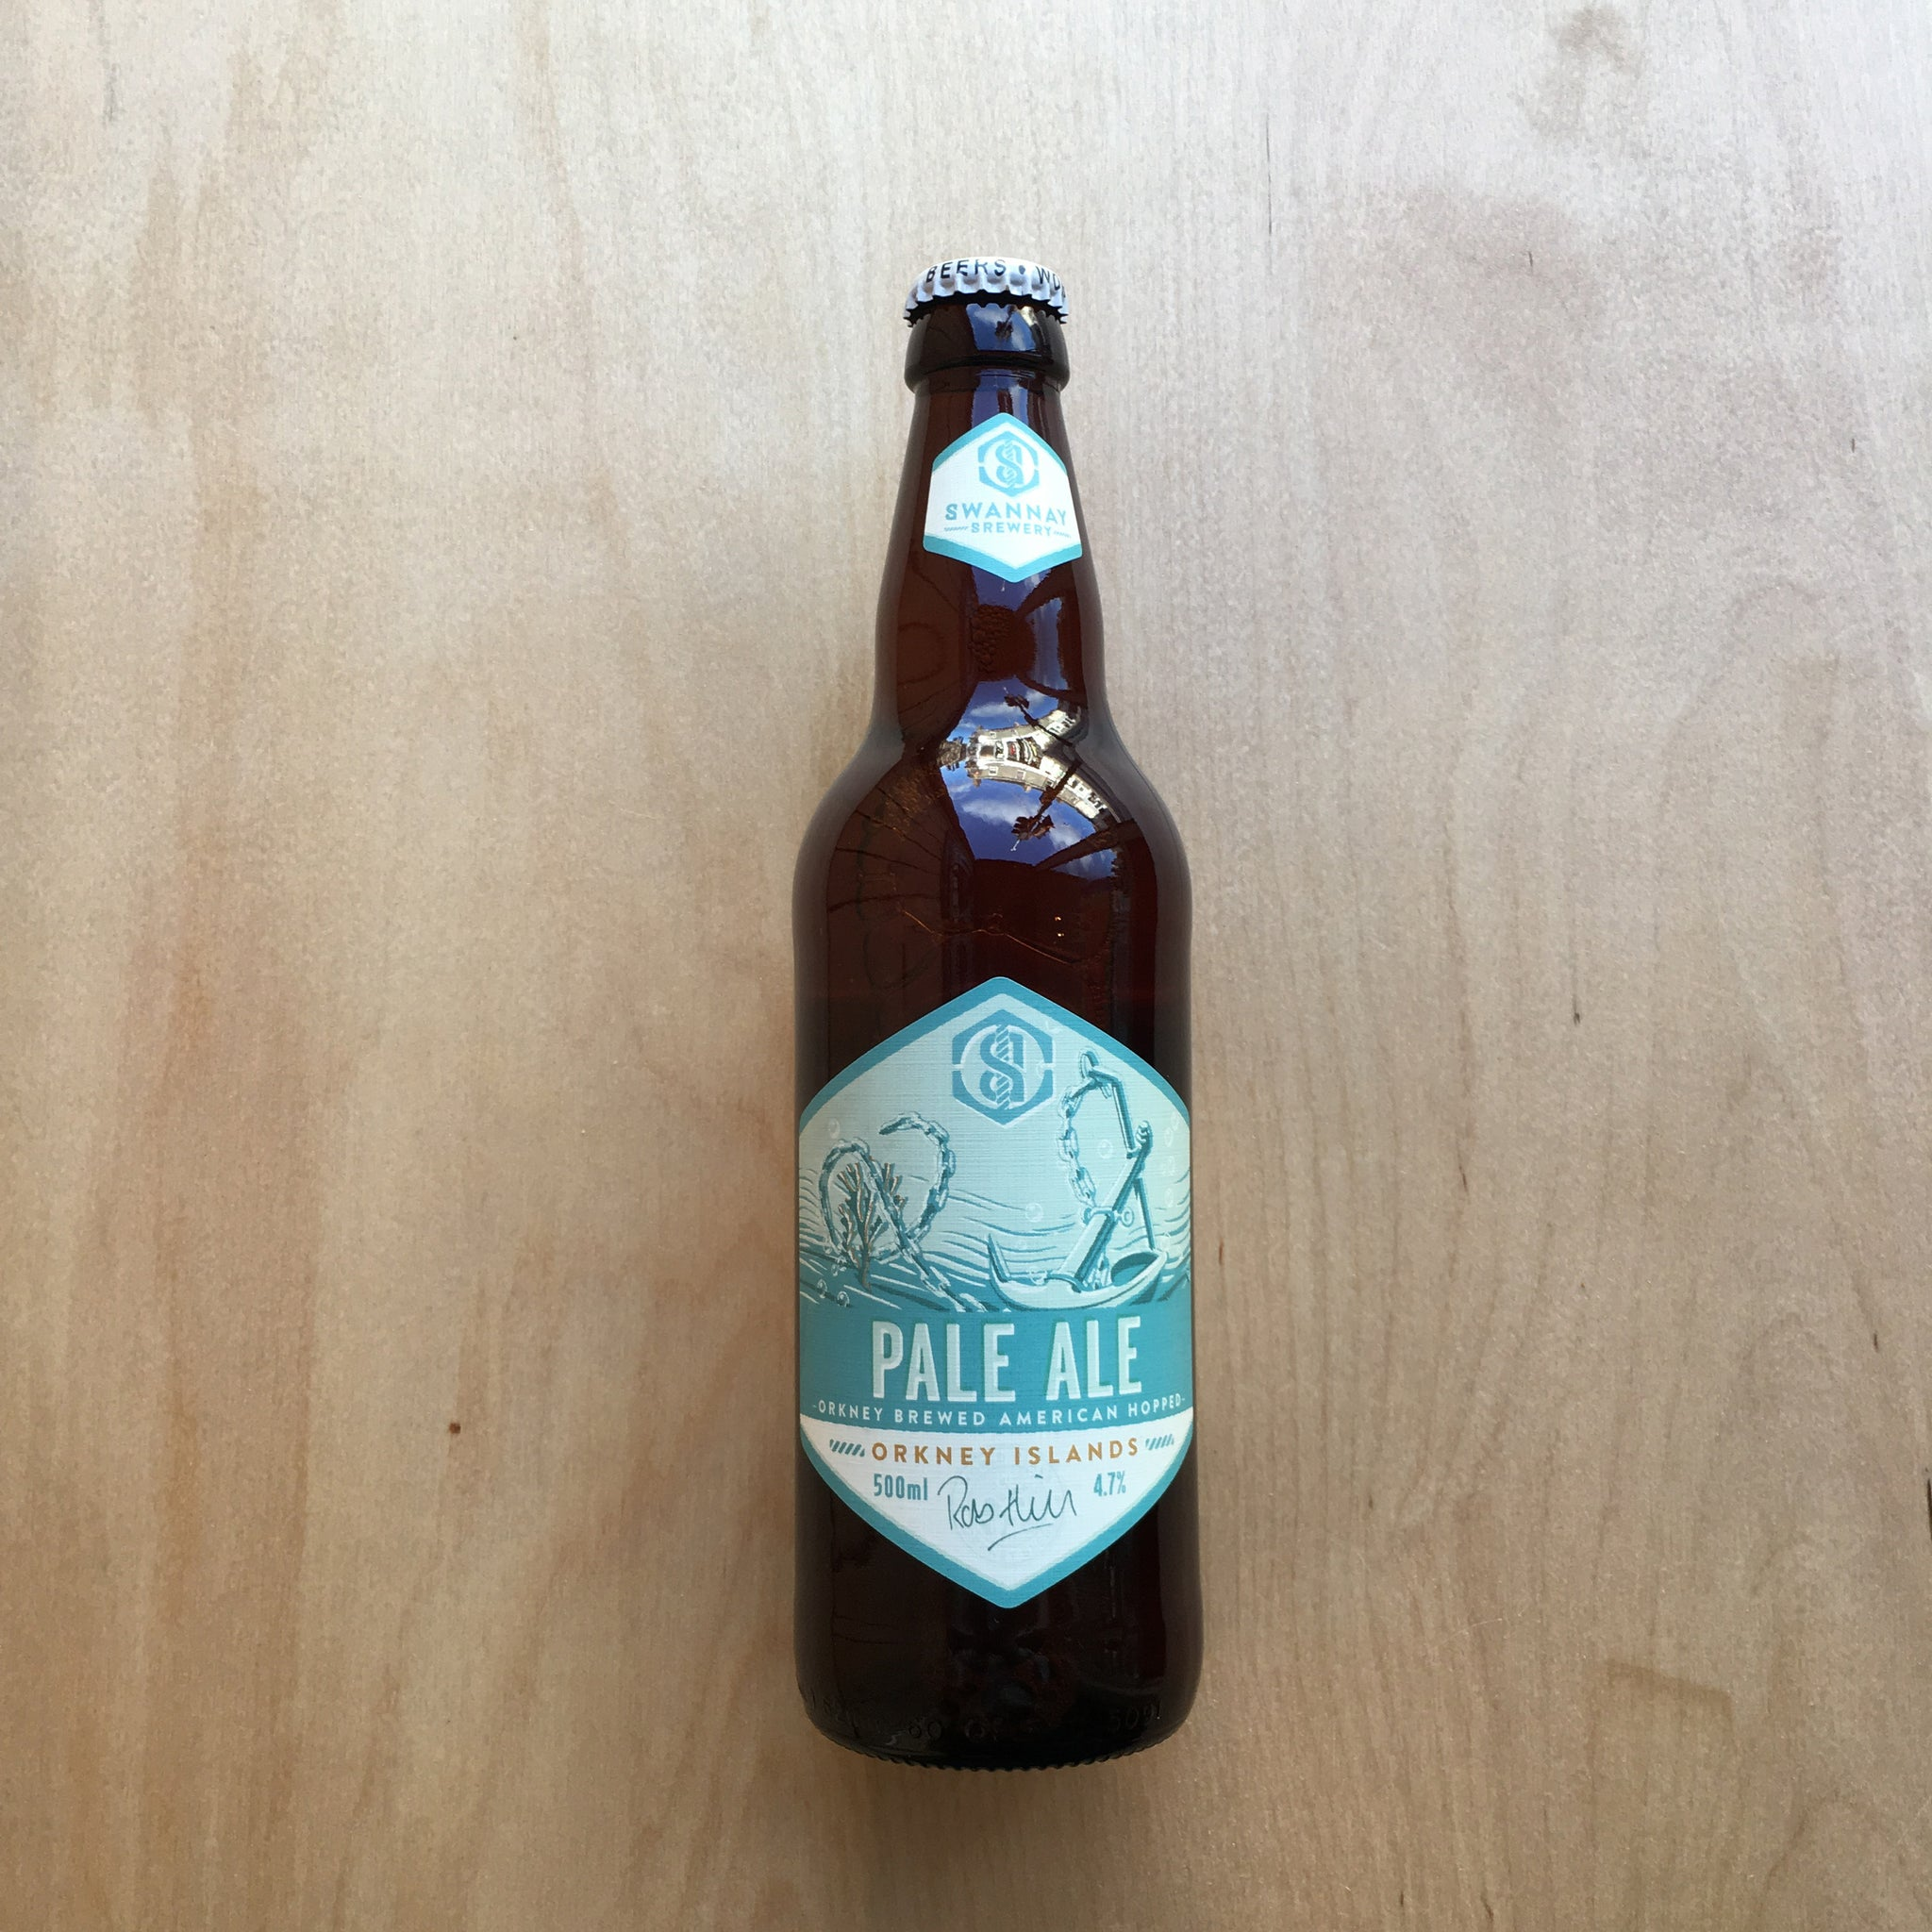 Swannay - Pale Ale 4.7% (500ml)